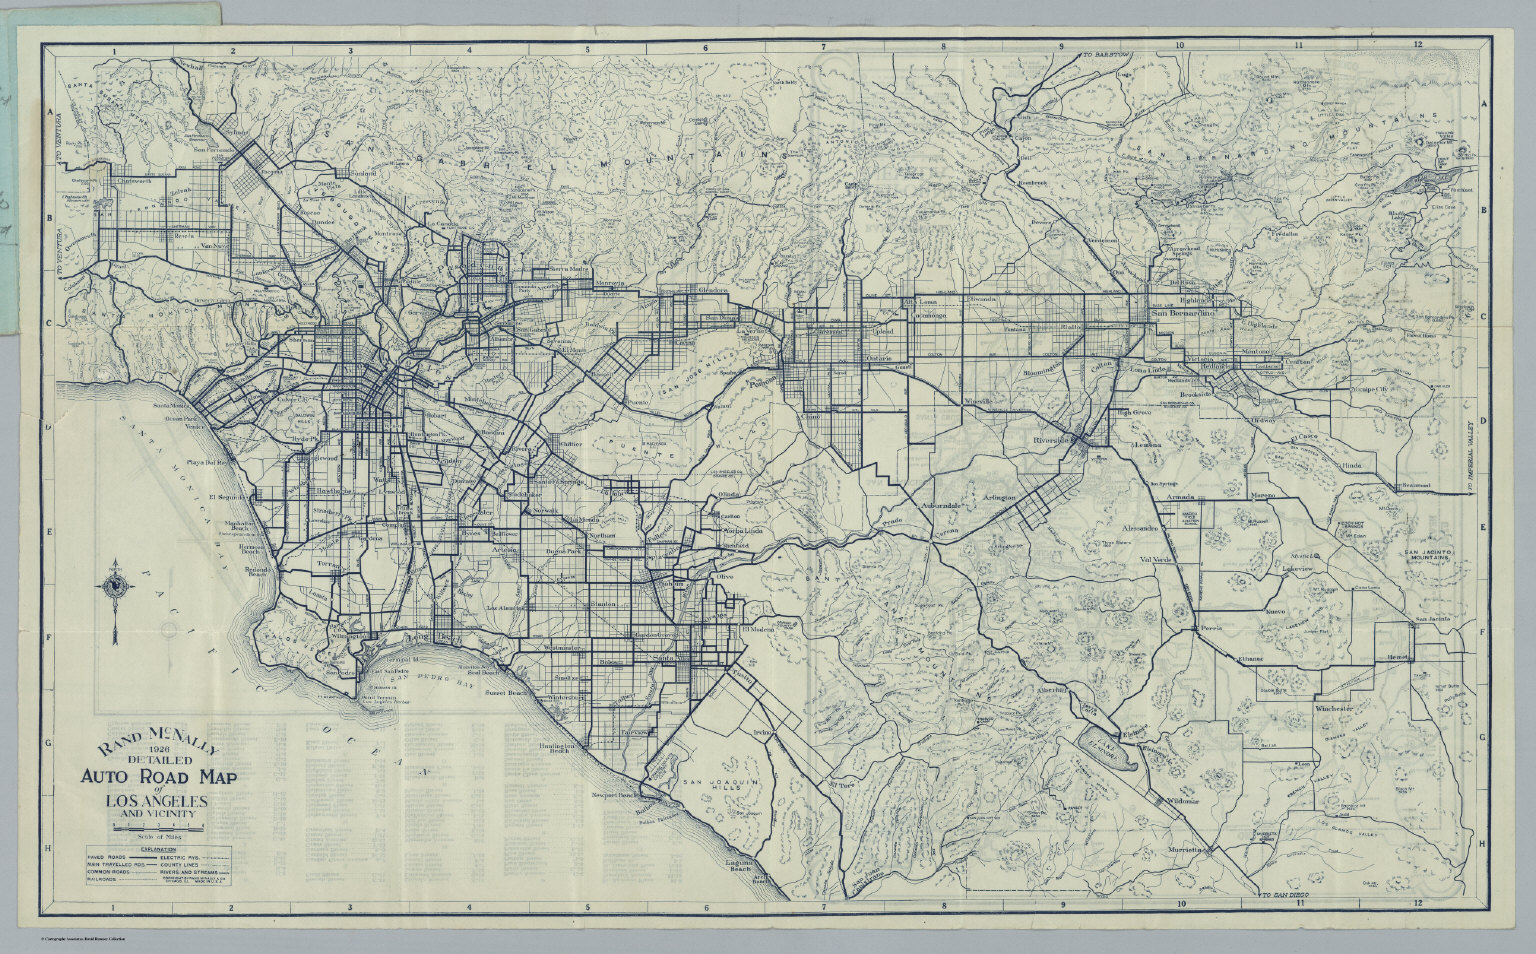 Auto Road Map Of Los Angeles And Vicinity David Rumsey Historical - Buy historical maps